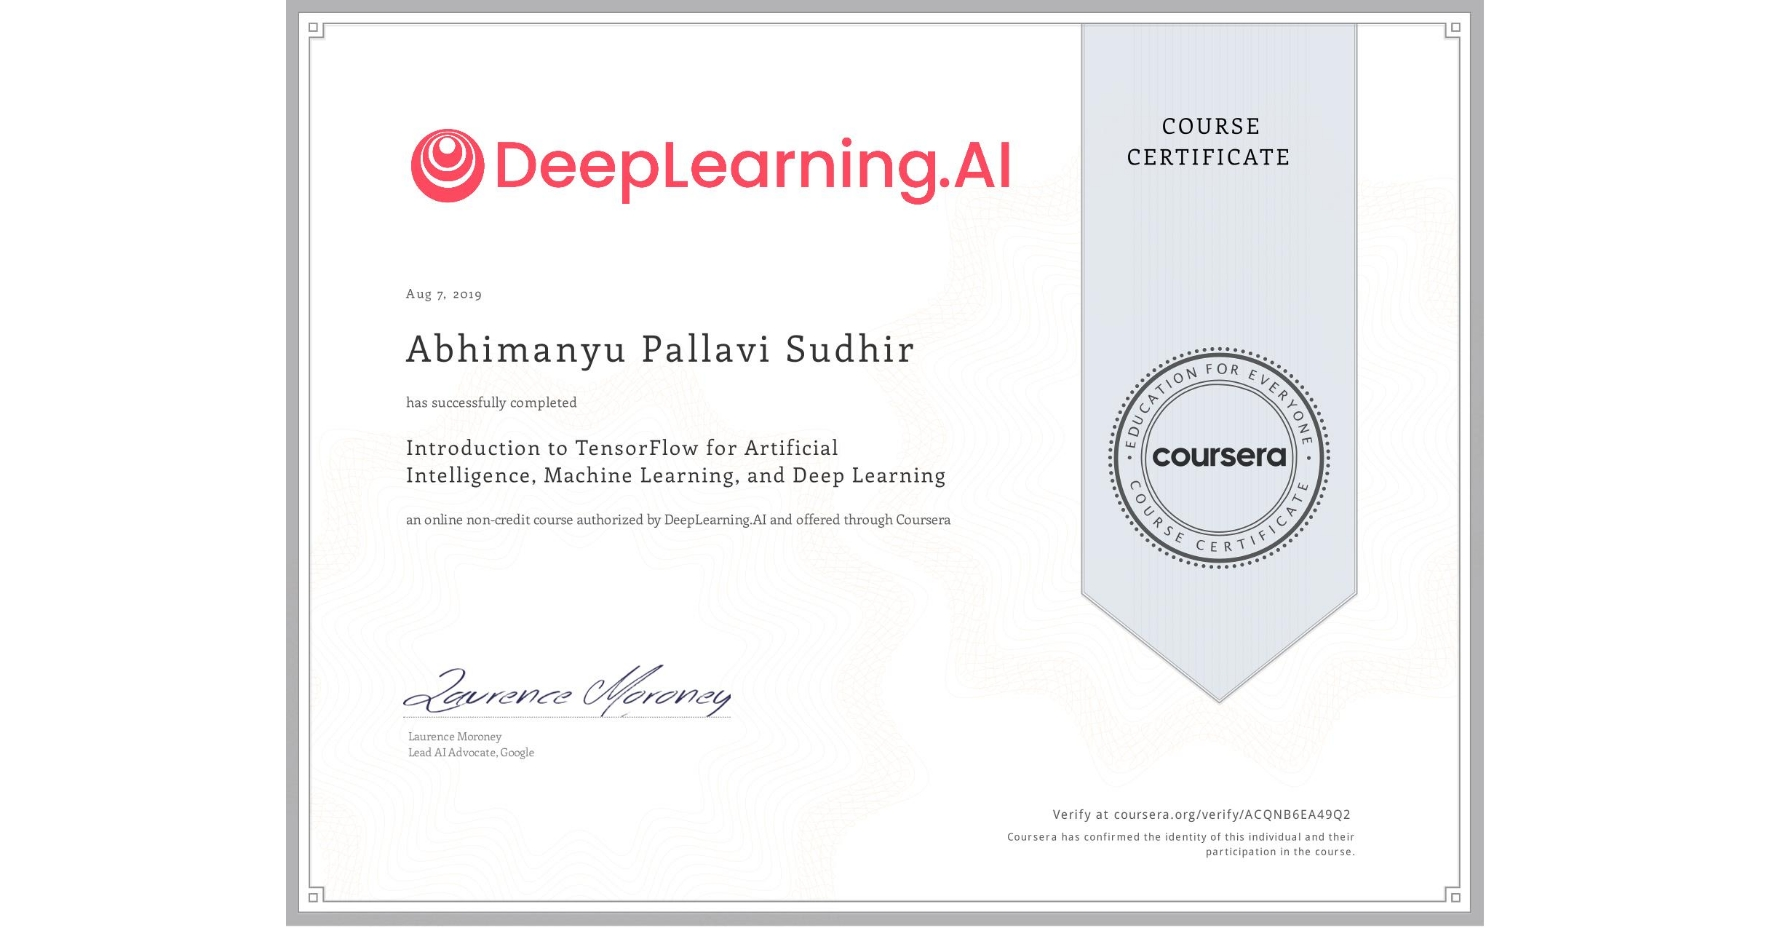 View certificate for Abhimanyu Pallavi Sudhir, Introduction to TensorFlow for Artificial Intelligence, Machine Learning, and Deep Learning, an online non-credit course authorized by DeepLearning.AI and offered through Coursera